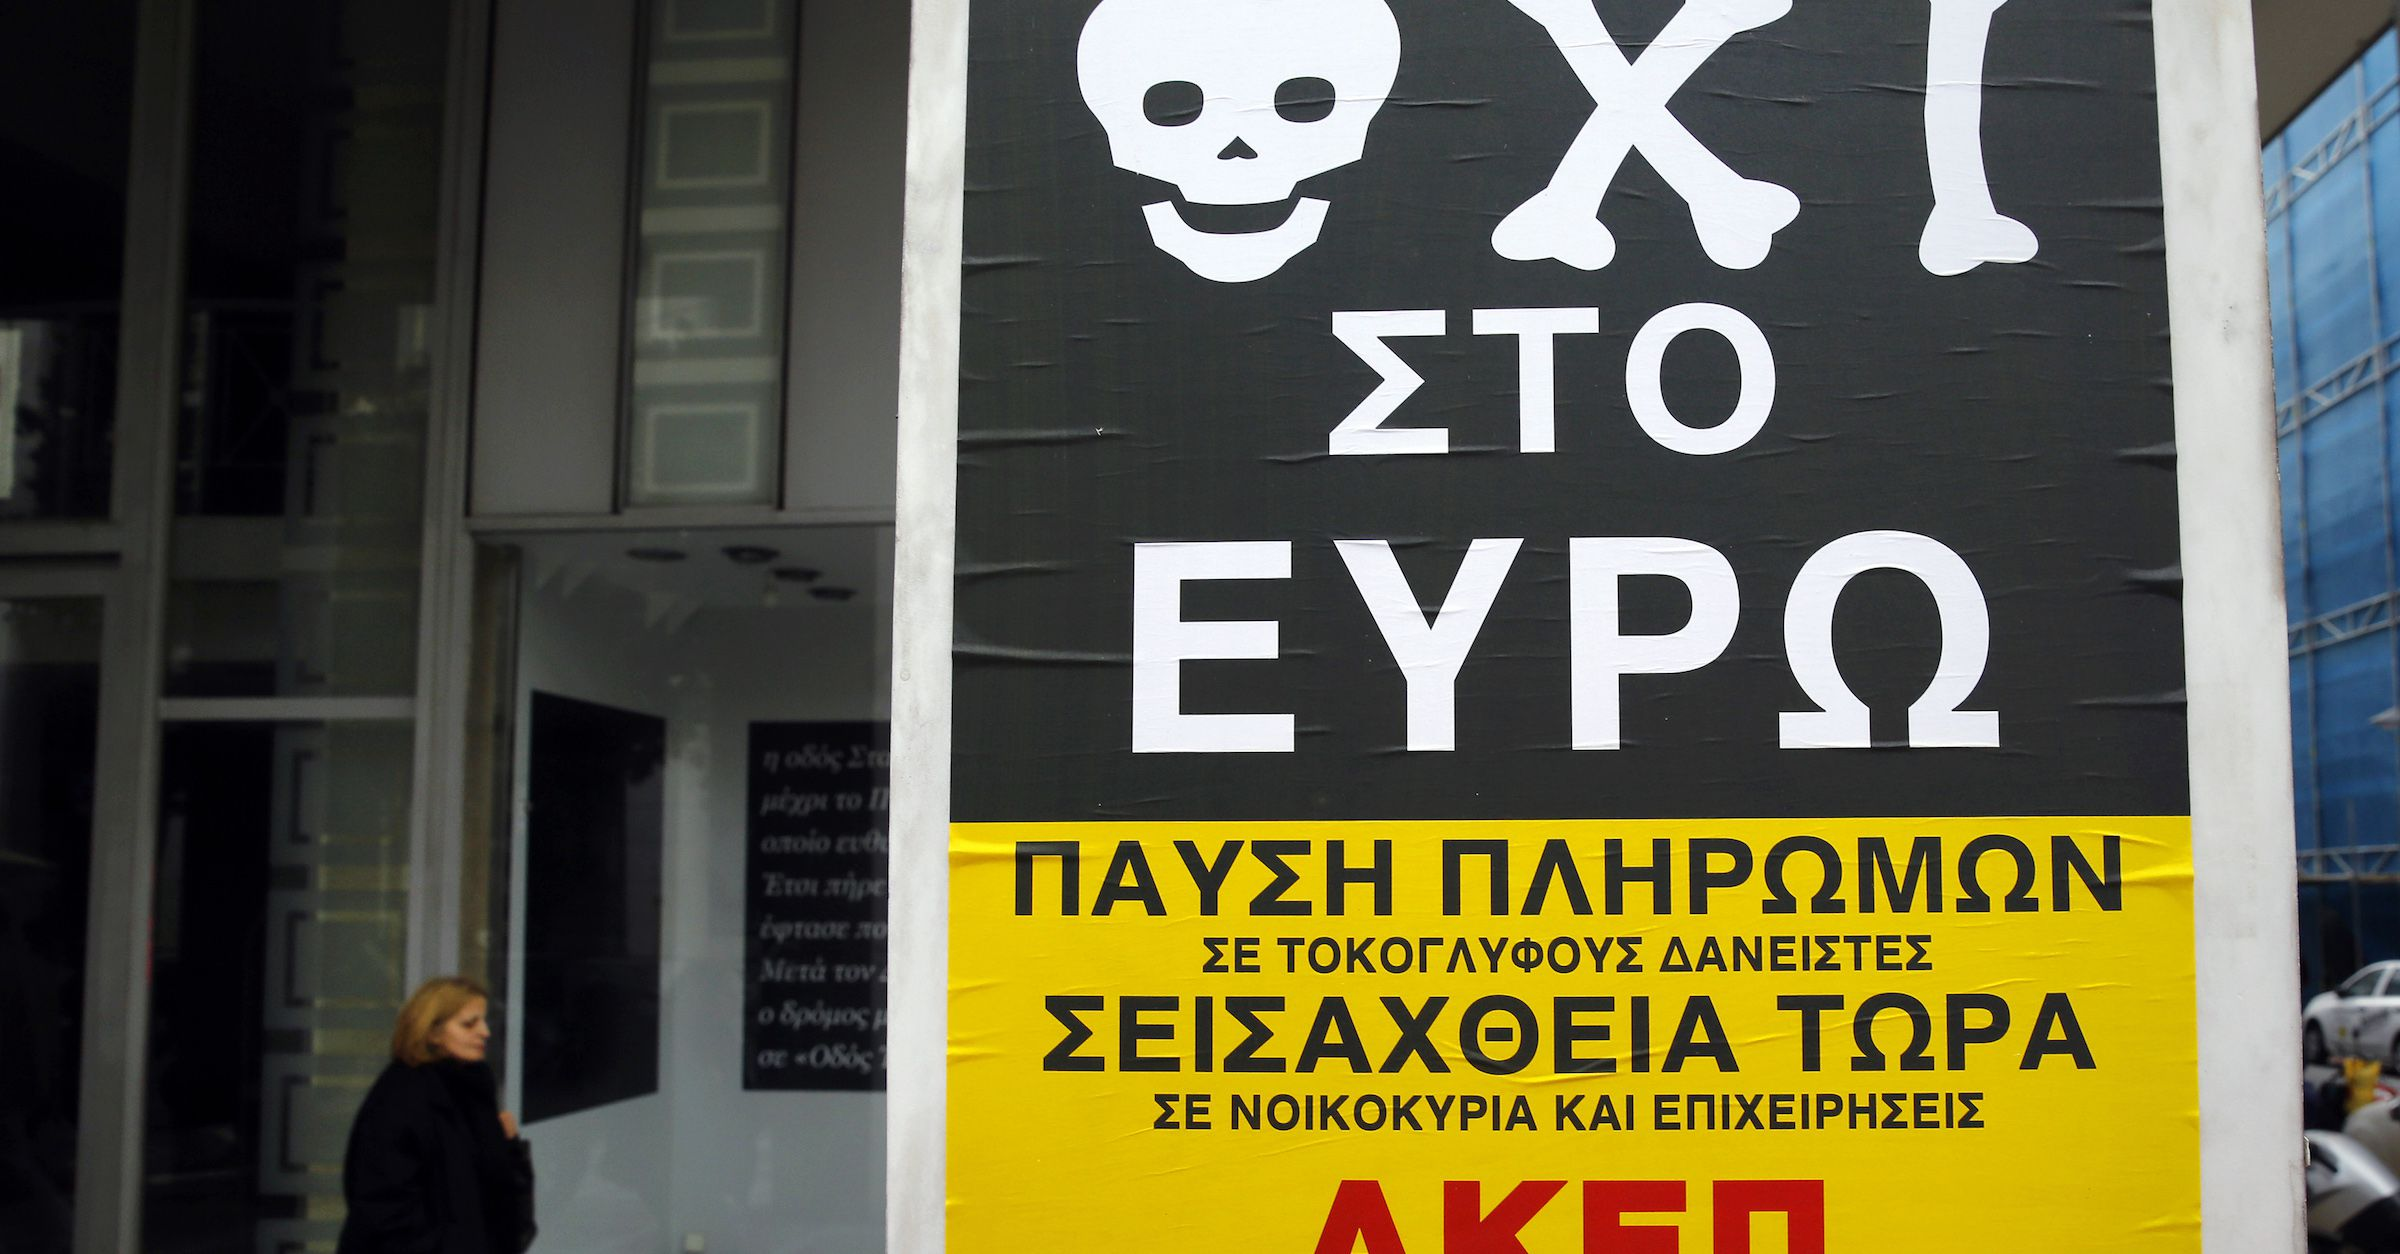 """A pedestrian walks by a poster that reads """"No to Euro"""" in central Athens, February 2, 2015. Greece's new left-wing government will not take any actions that would hurt the share values of the country's banks and does not plan to appoint party officials at key management posts, the government's spokesman said on Monday.  REUTERS/Yannis Behrakis (GREECE - Tags: POLITICS BUSINESS) - RTR4NW7W"""